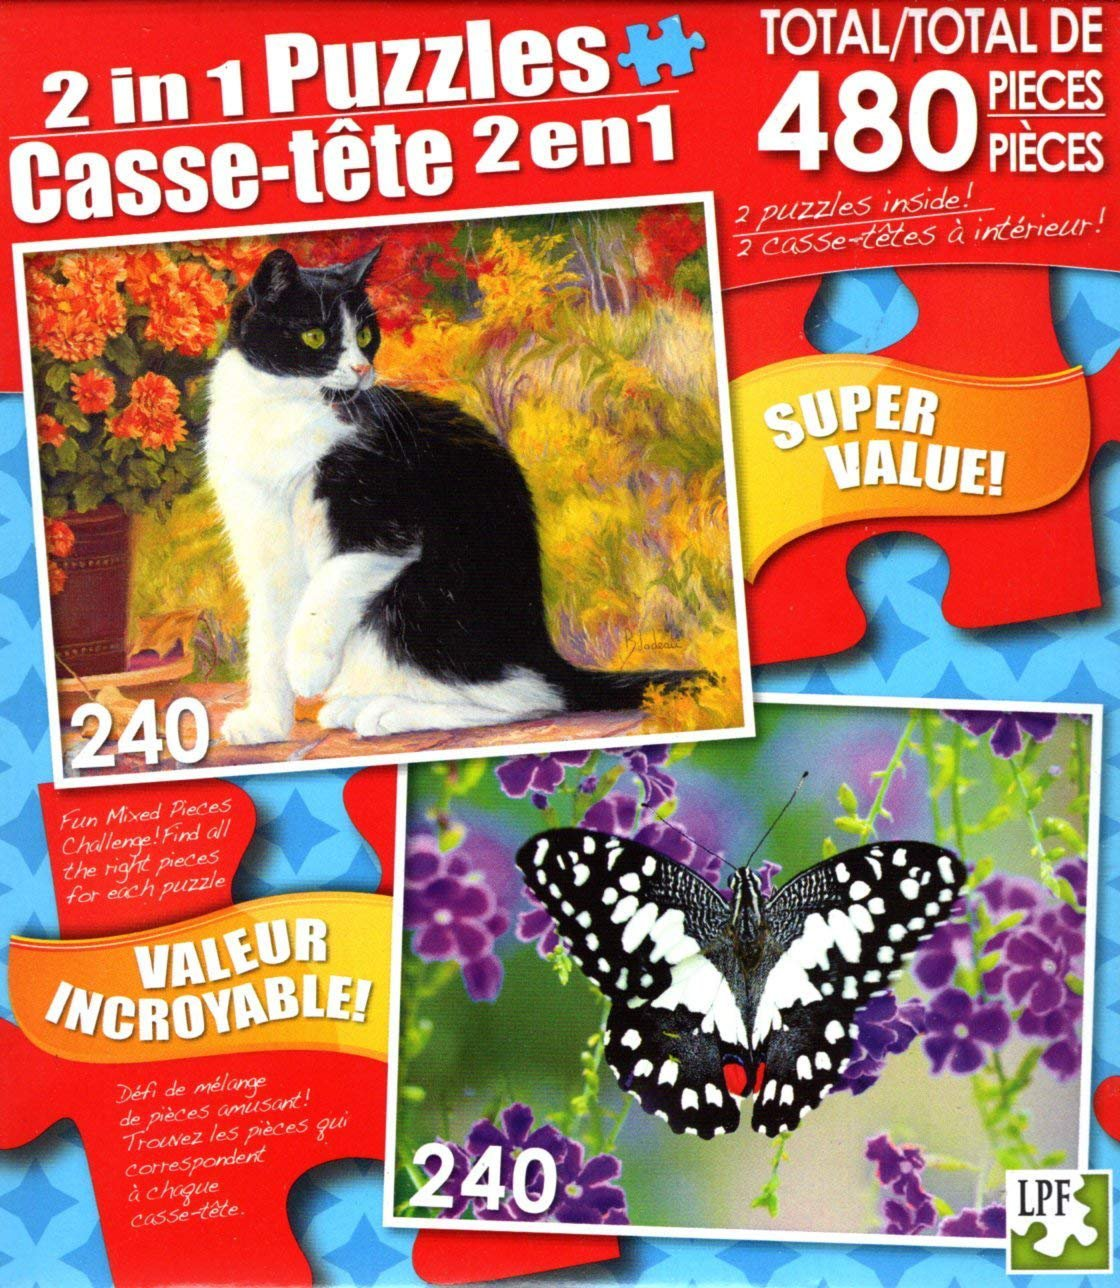 LPF Looking Afar - Butterfly on Violet Flowers - Total 480 Piece 2 in 1 Jigsaw Puzzles